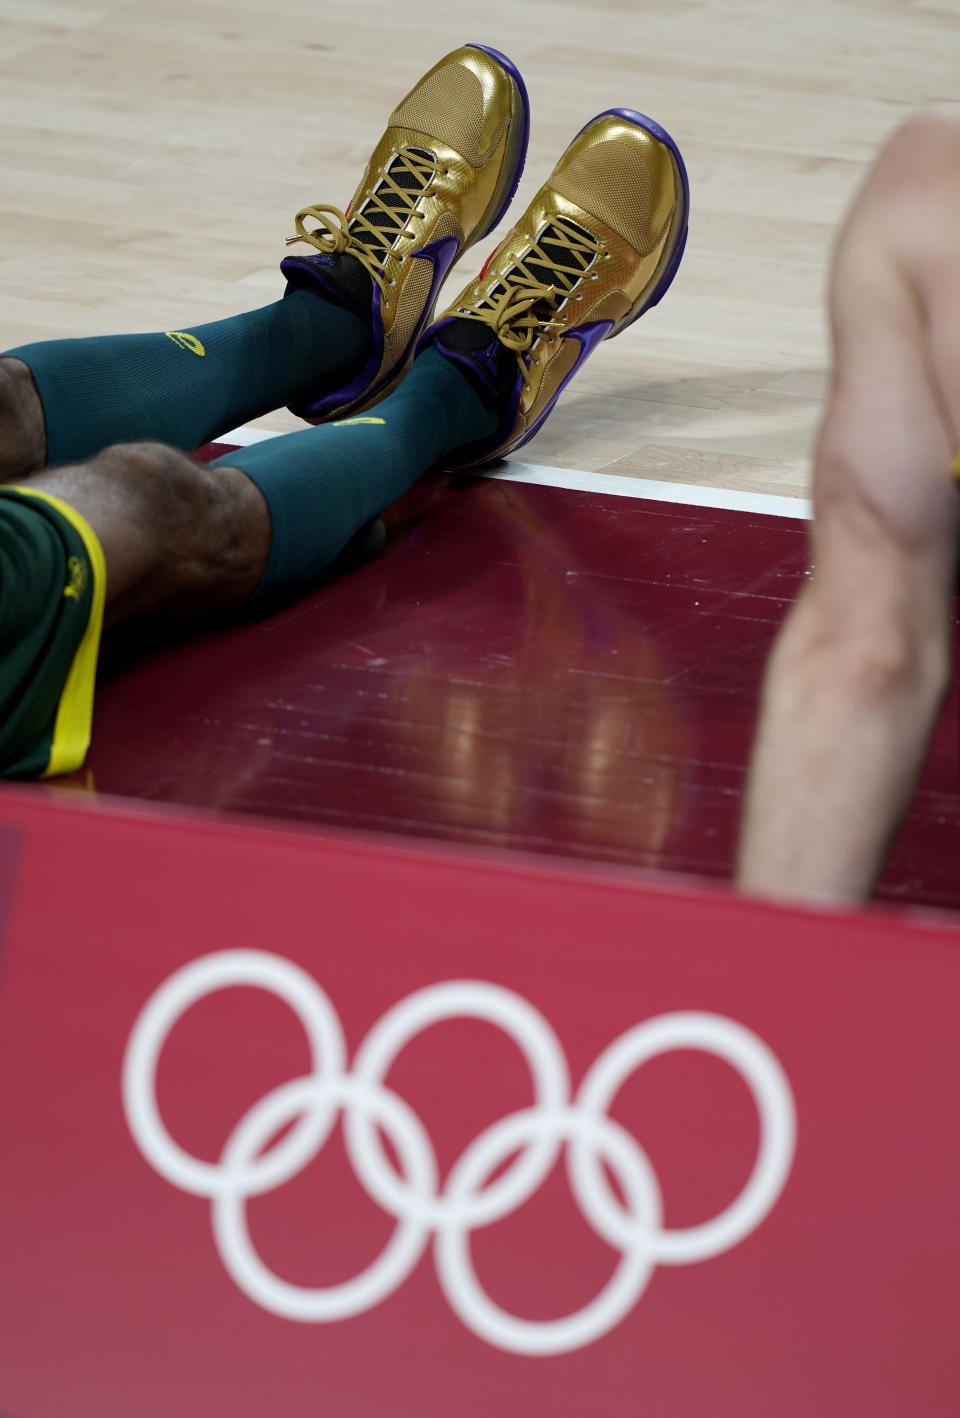 Australia' Matisse Thybulle wears gold shoes during practices with the team at the 2020 Summer Olympics, Friday, July 23, 2021, in Saitama, Japan. (AP Photo/Eric Gay) - Credit: AP